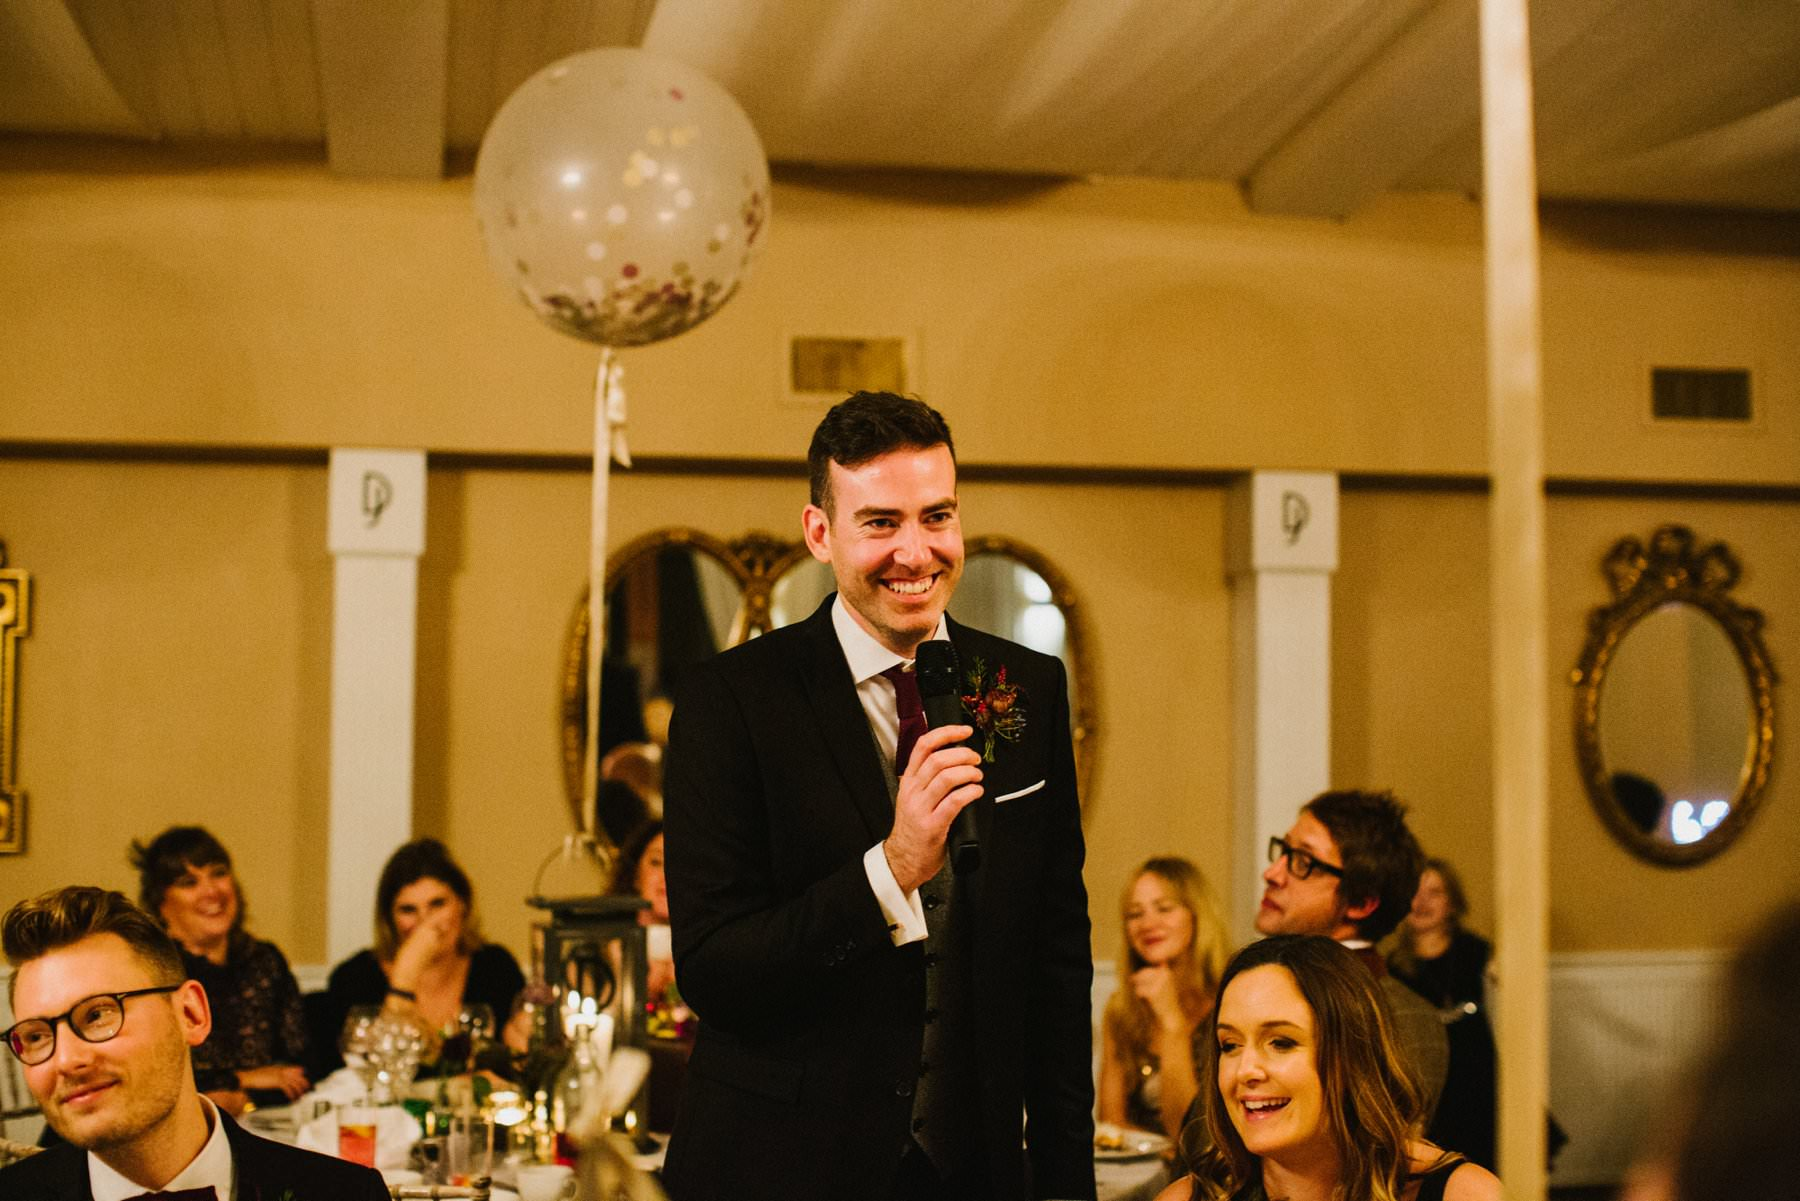 groom gives speech at his wedding reception at Bellinter House